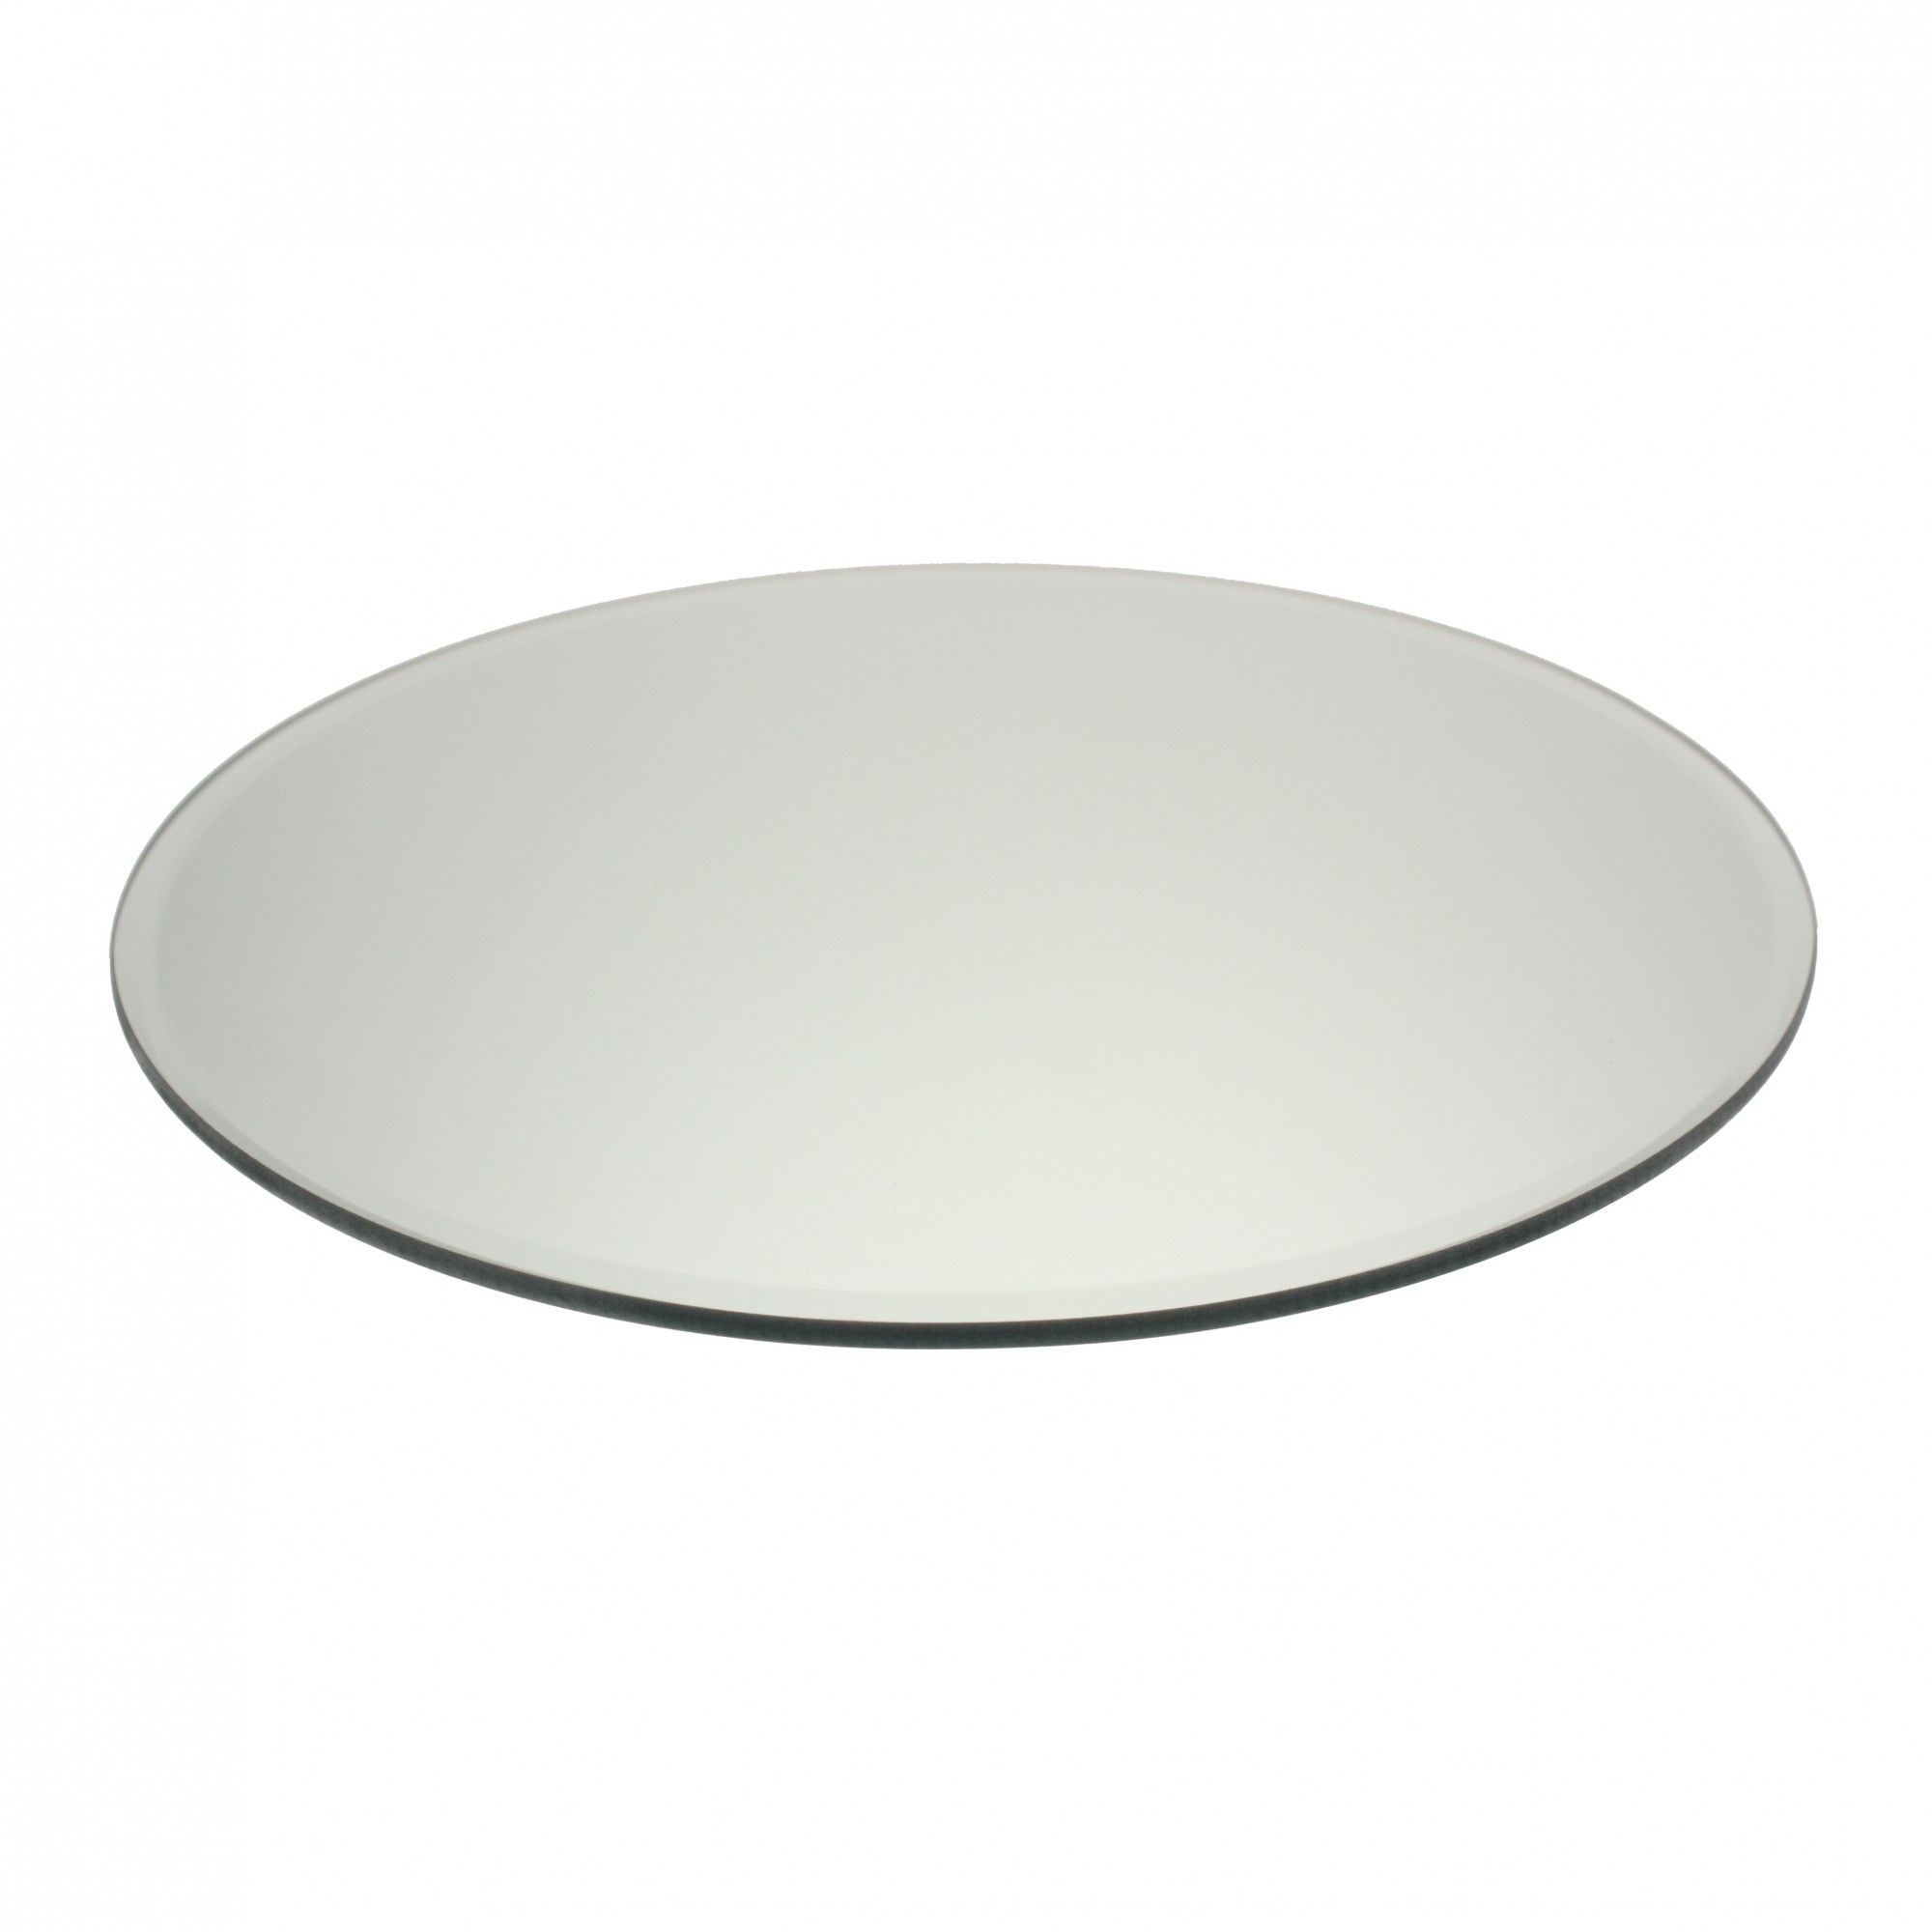 Buy A Round Mirror Plate For Your Wedding At The Wedding Mall. These Mirror  Plates Are Great For Your Table Centre Pieces